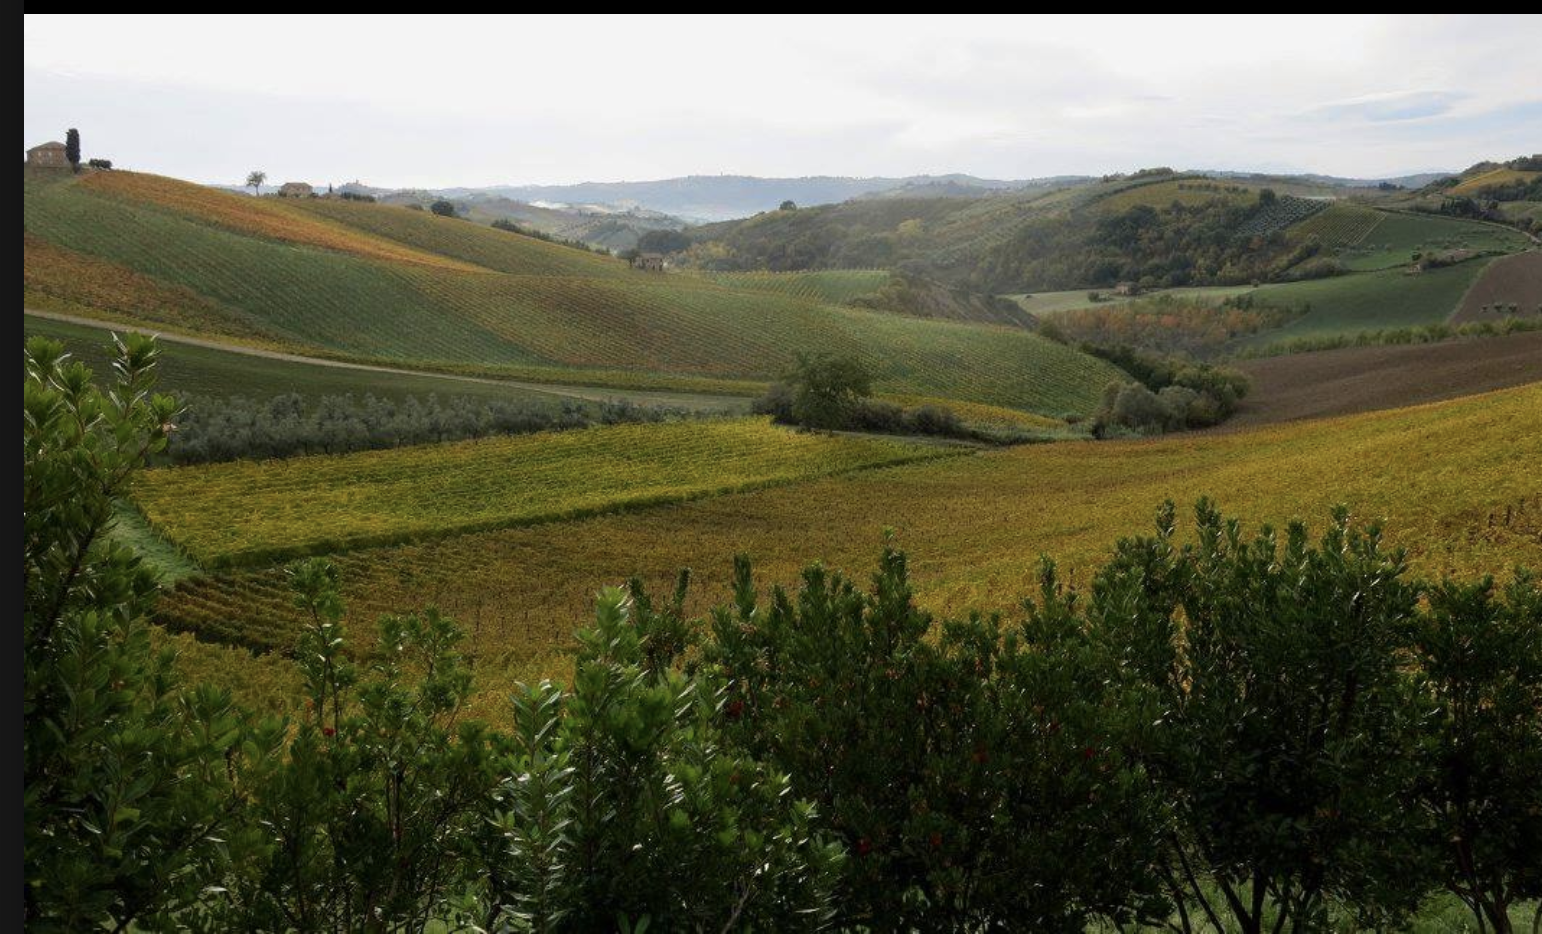 Hills of Southern Marche region of Italy